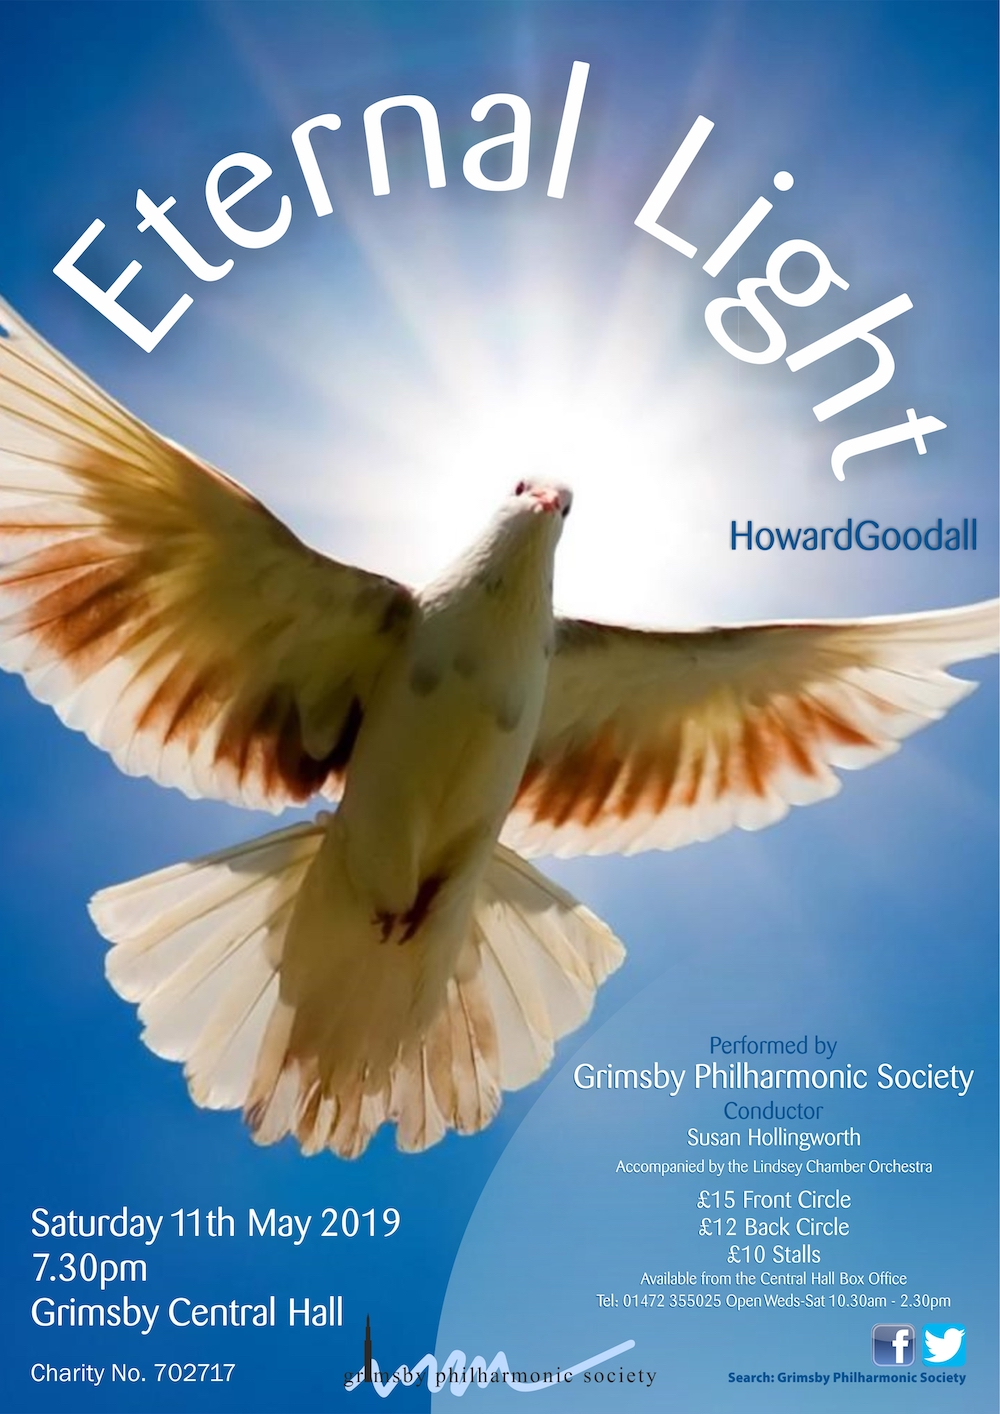 Eternal Light concert at Grimsby Central Hall by Grimsby Philharmonic @ Grimsby Central Hall